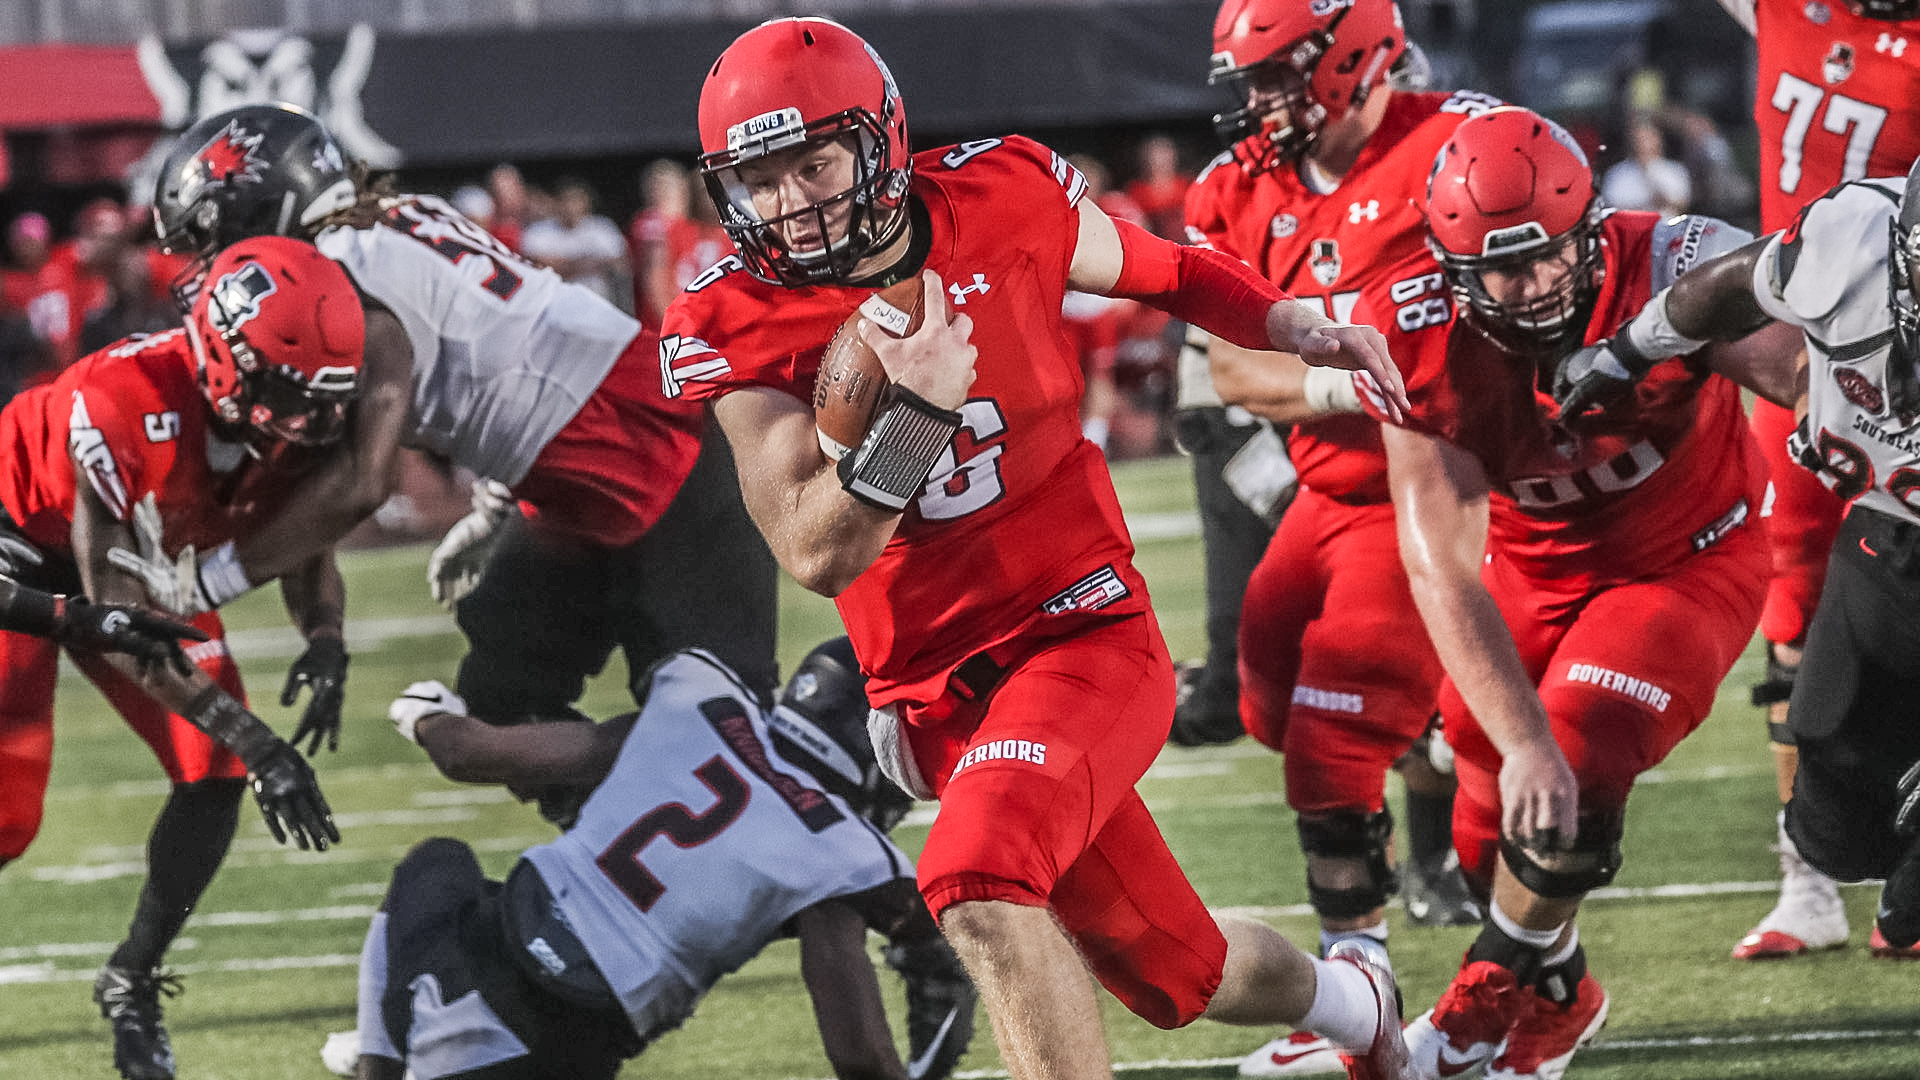 the official athletic site of the austin peay govenors